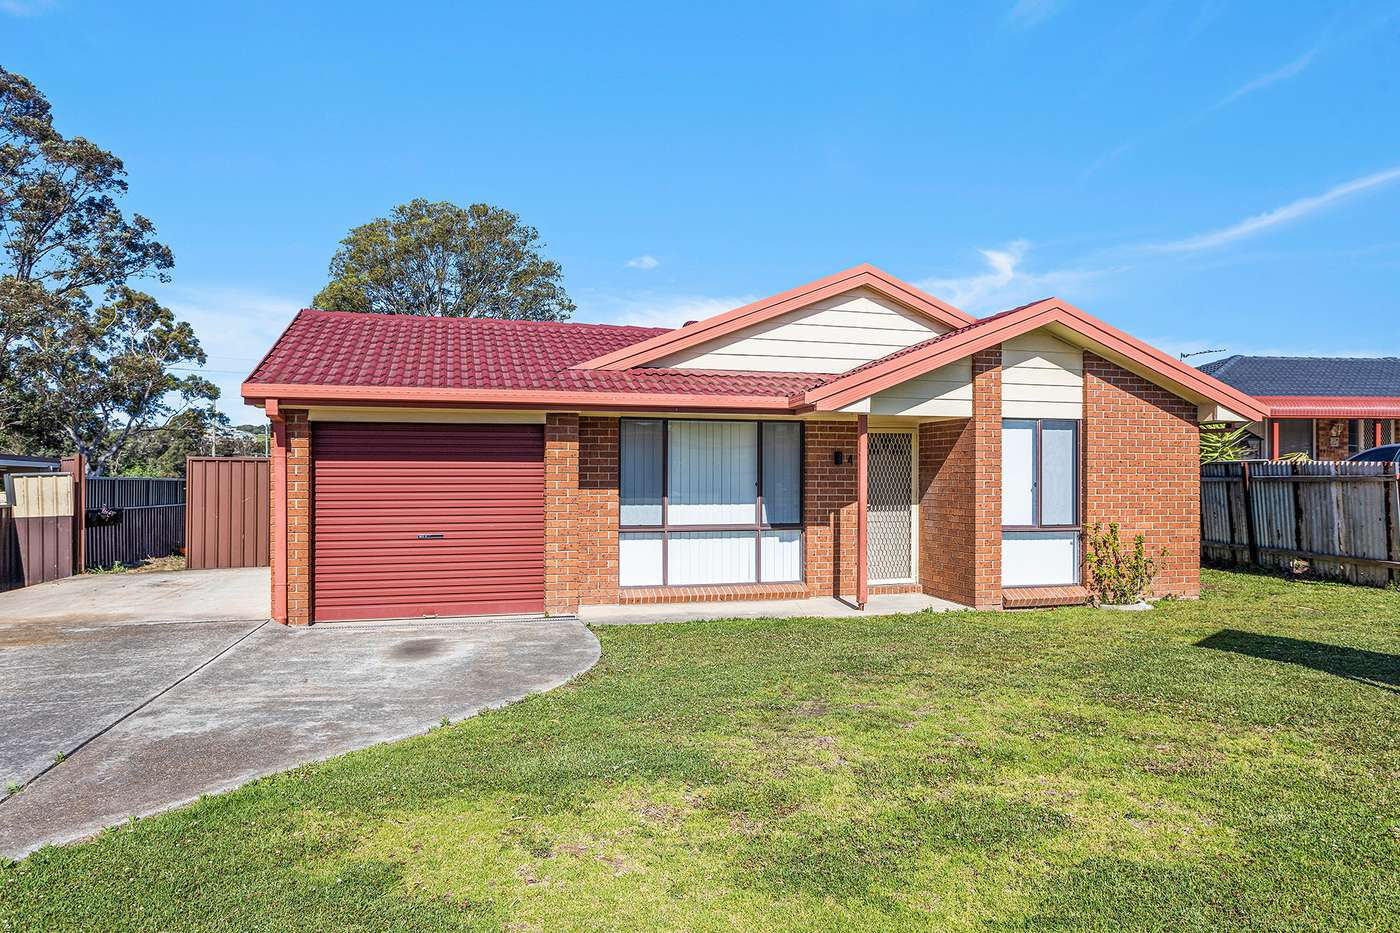 Main view of Homely villa listing, 4 Hakea Place, Albion Park Rail, NSW 2527